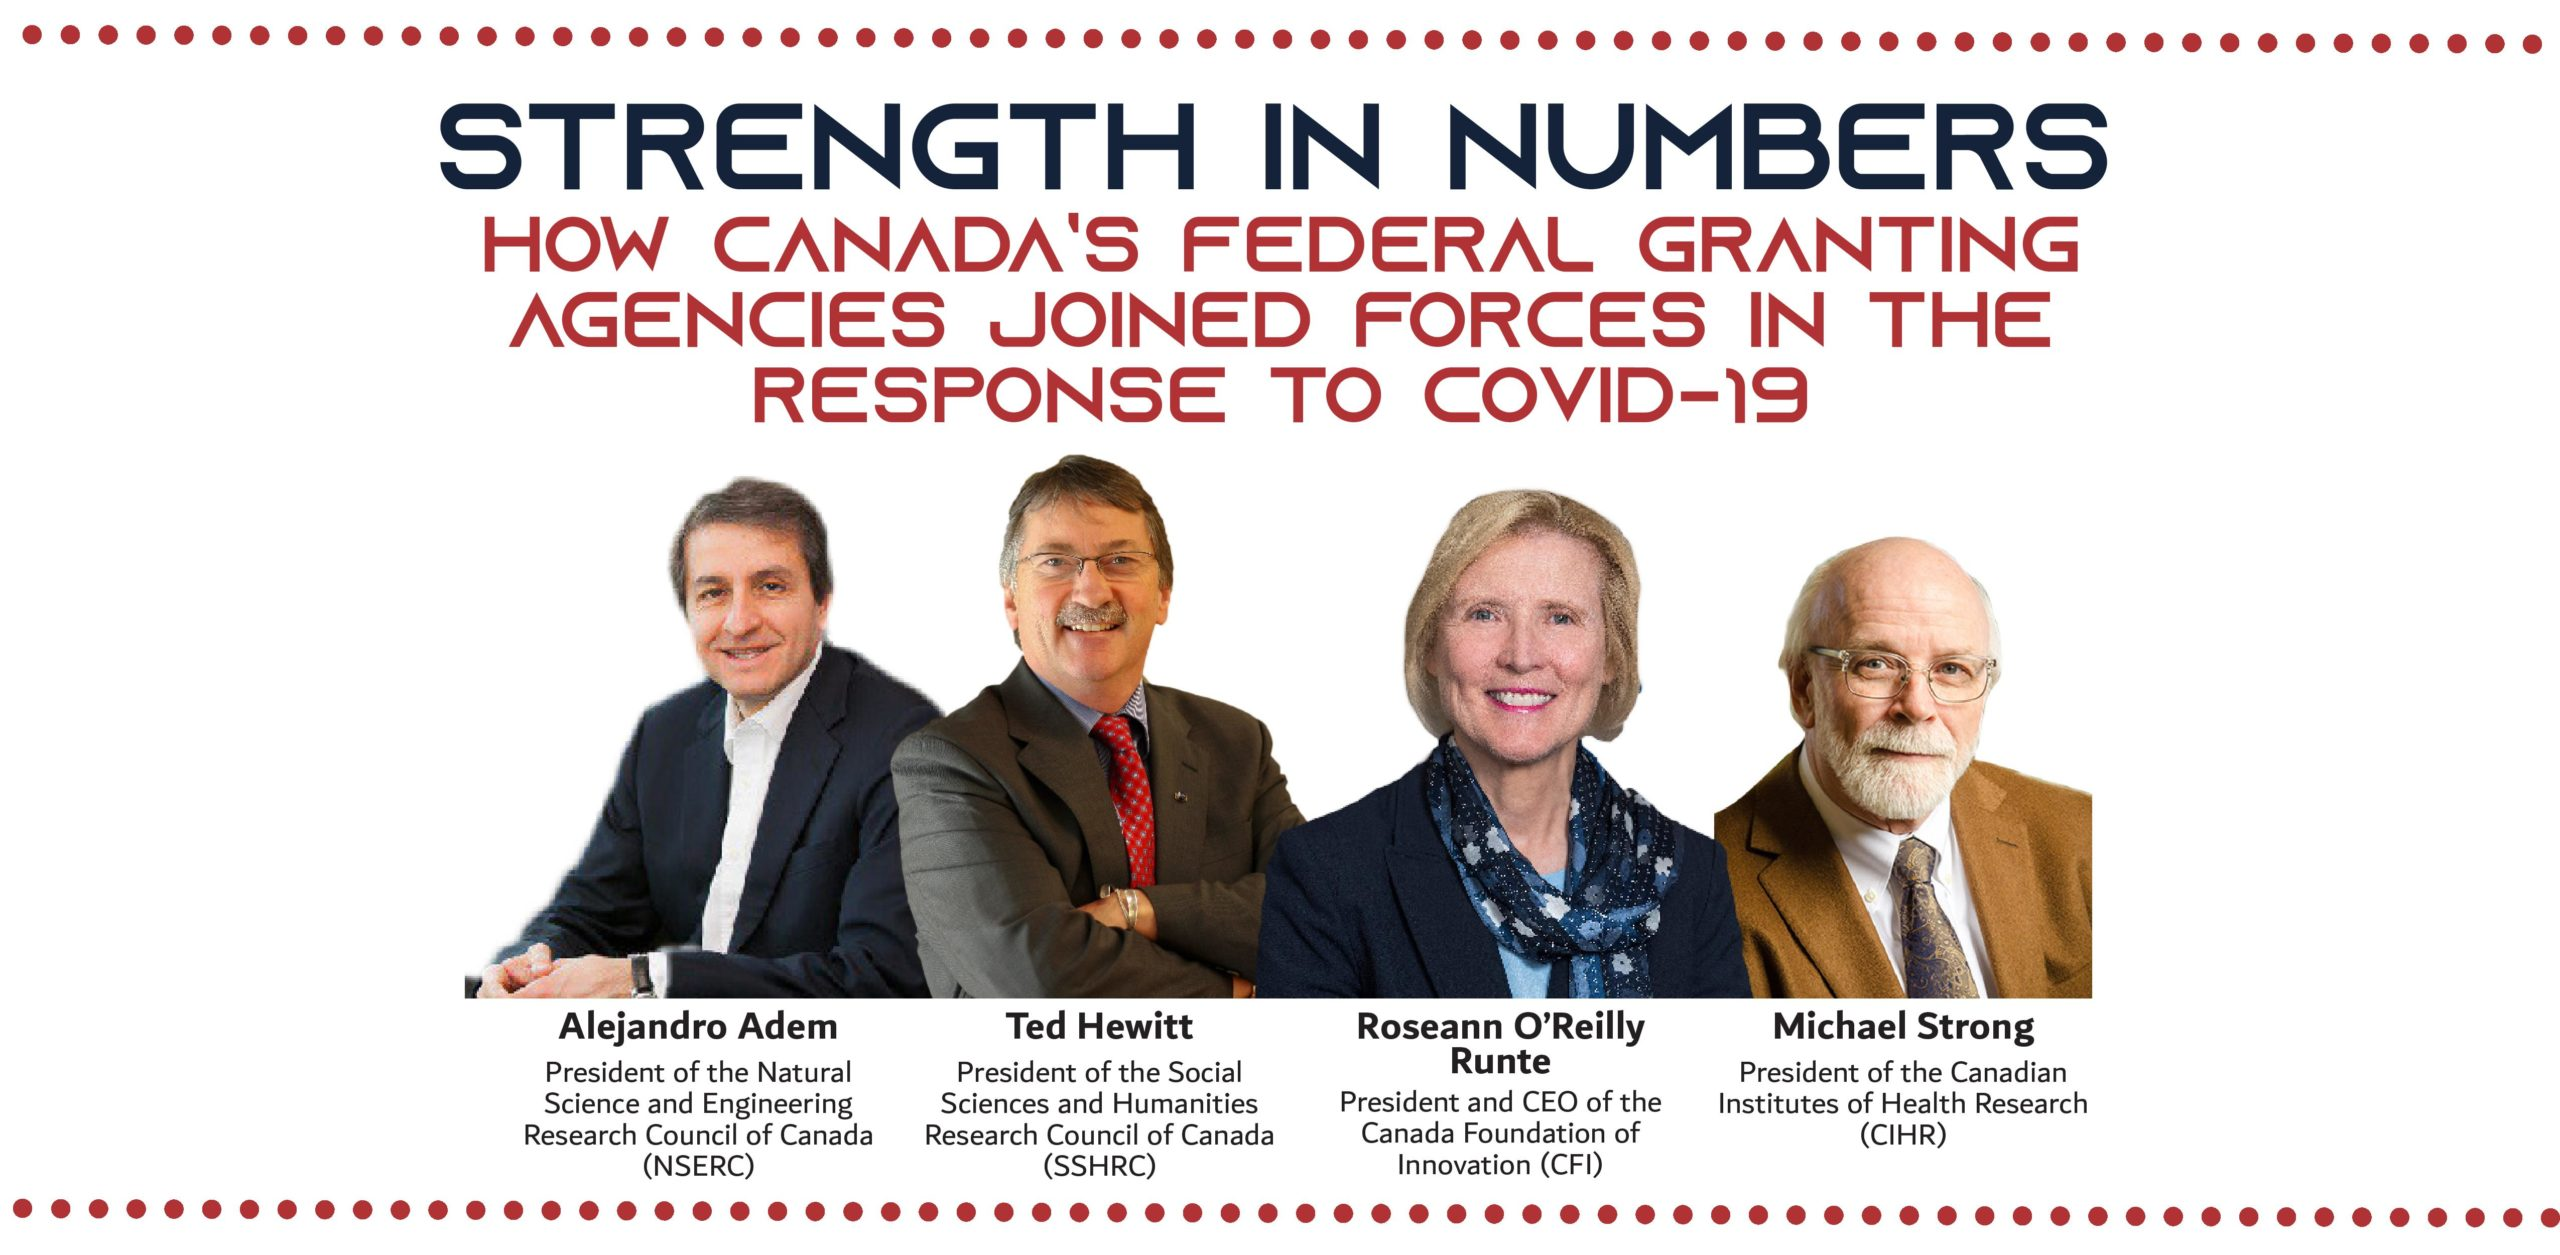 Strength in Numbers How Canada's federal granting agencies joined forces in the response to COVID-19 Alejandro Adem President of the Natural Science and Engineering Research Council of Canada (NSERC), Ted Hewitt President of the Social Sciences and Humanities Research Council of Canada (SSHRC), Dr. Roseann O'Reilly Runte President and CEO of the Canada Foundation of Innovation (CFI), Michael Strong President of the Canadian Institutes of Health Research (CIHR)